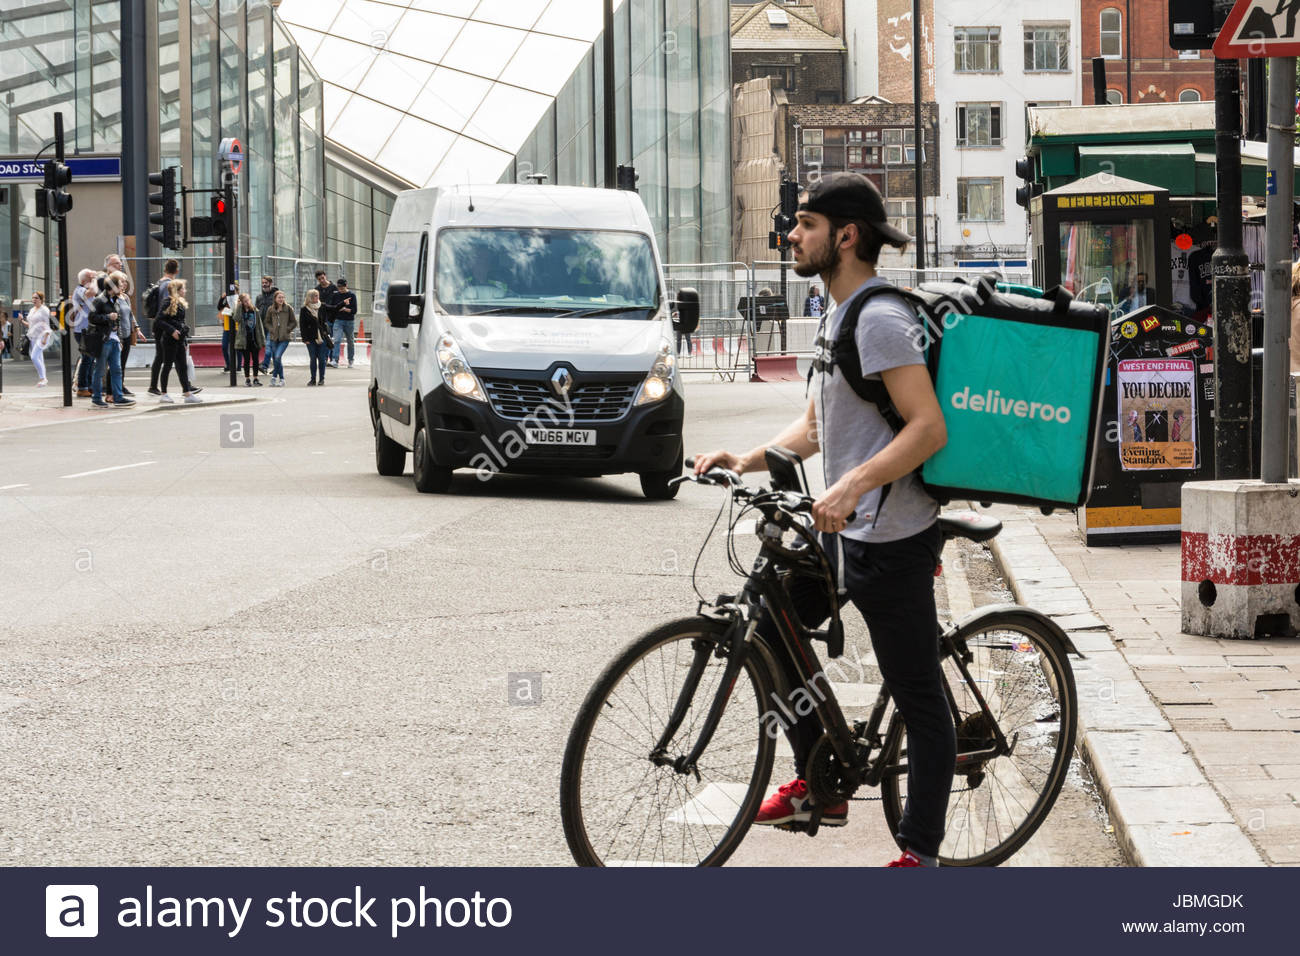 A Deliveroo driver on his bike in central London, UK - Stock Image